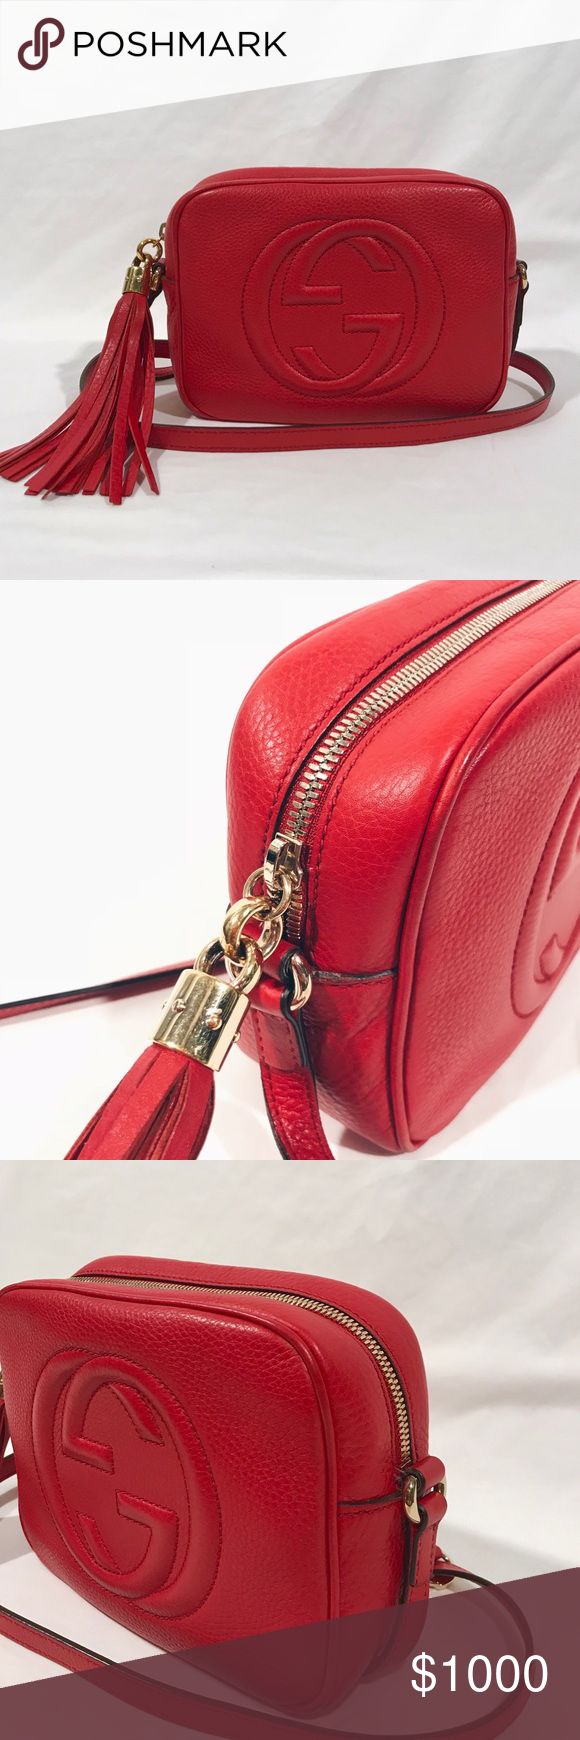 bc14bd5c74f7 100% Authentic Red Gucci Leather Soho Disco Bag 100% Authentic Red Gucci  Leather Soho